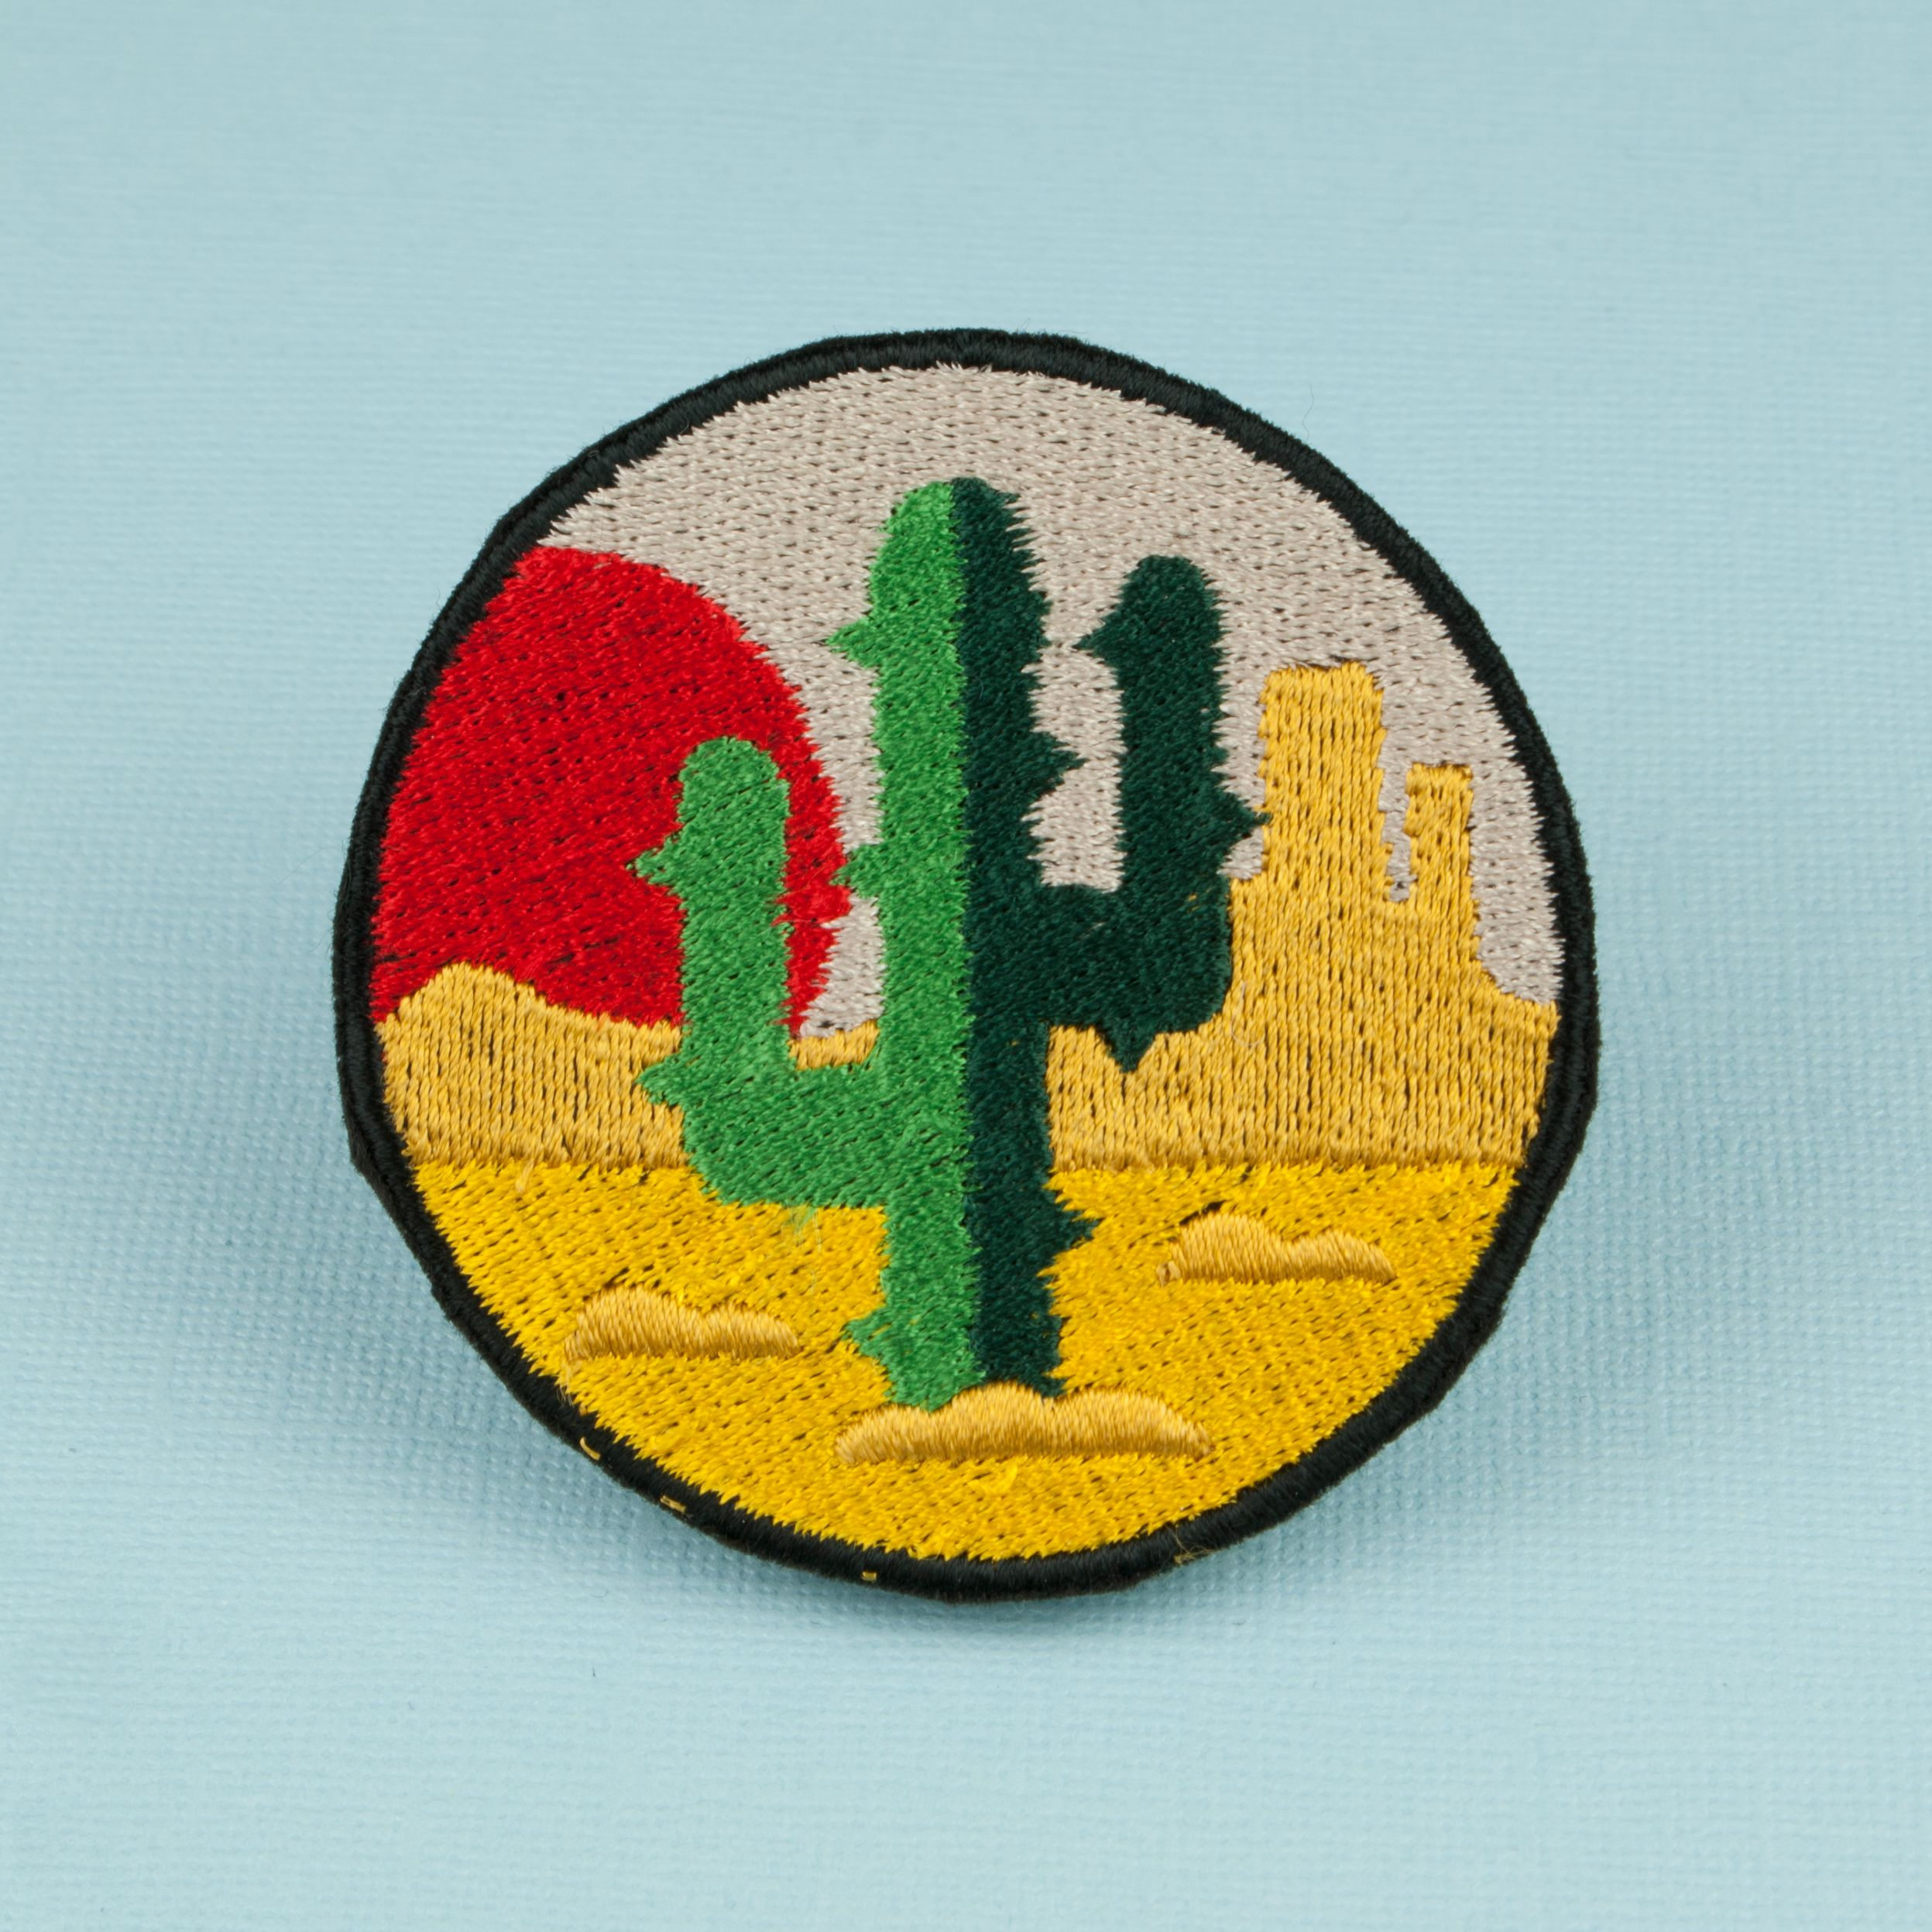 Lonely Cactus Iron on Patch Iron on patches, Embroidery